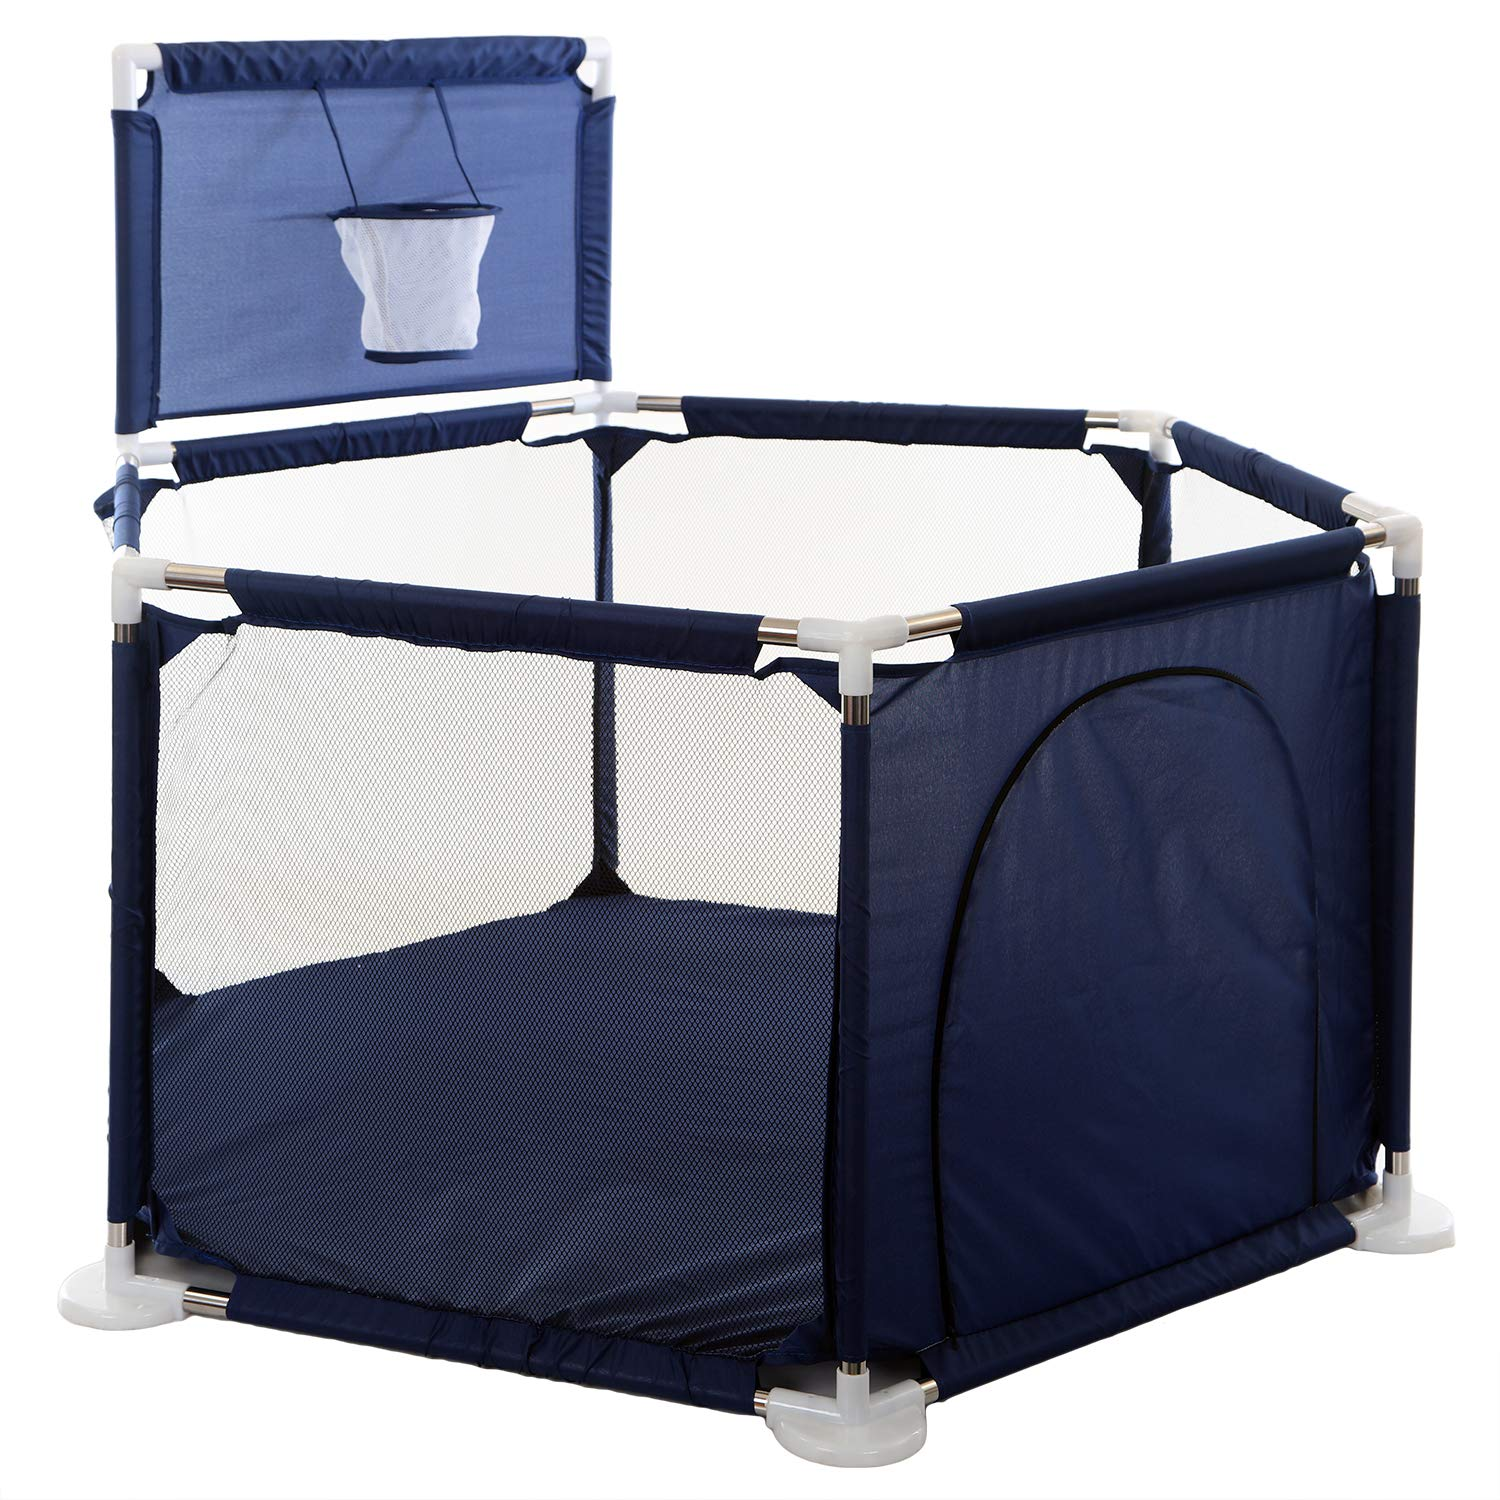 KINGBO Baby Play Yard / Ball Pits / Baby Playpen / Fence for Baby, 15 Sq.ft Play Space, 26.2 Inches Height, Portable, Two Color(Blue)